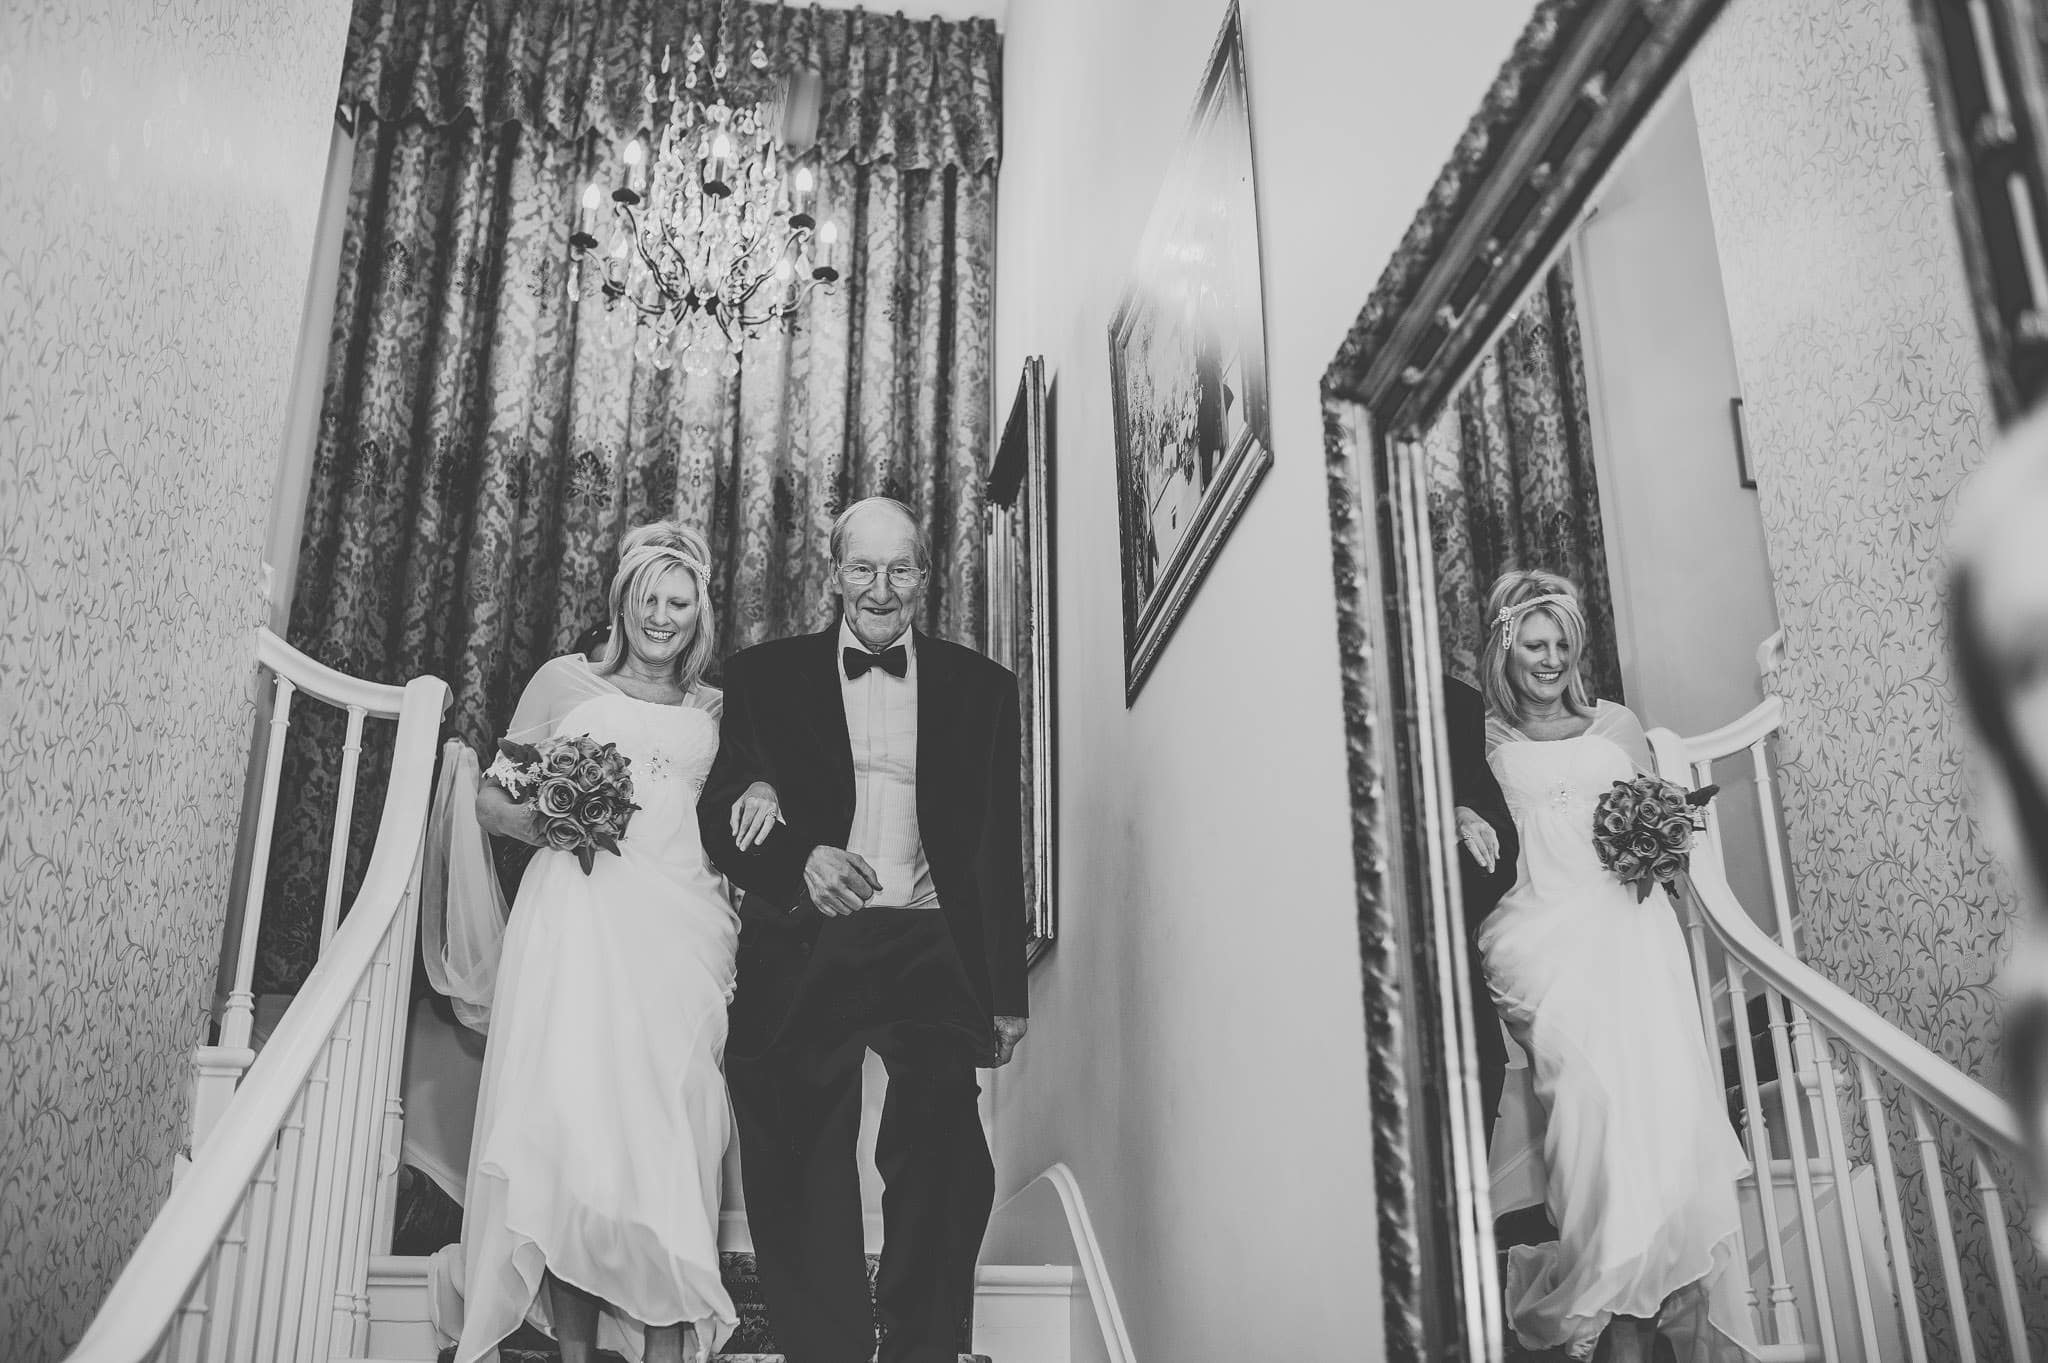 wedding photography west midlands 31 - Wedding photography West Midlands | Claire + Stephen